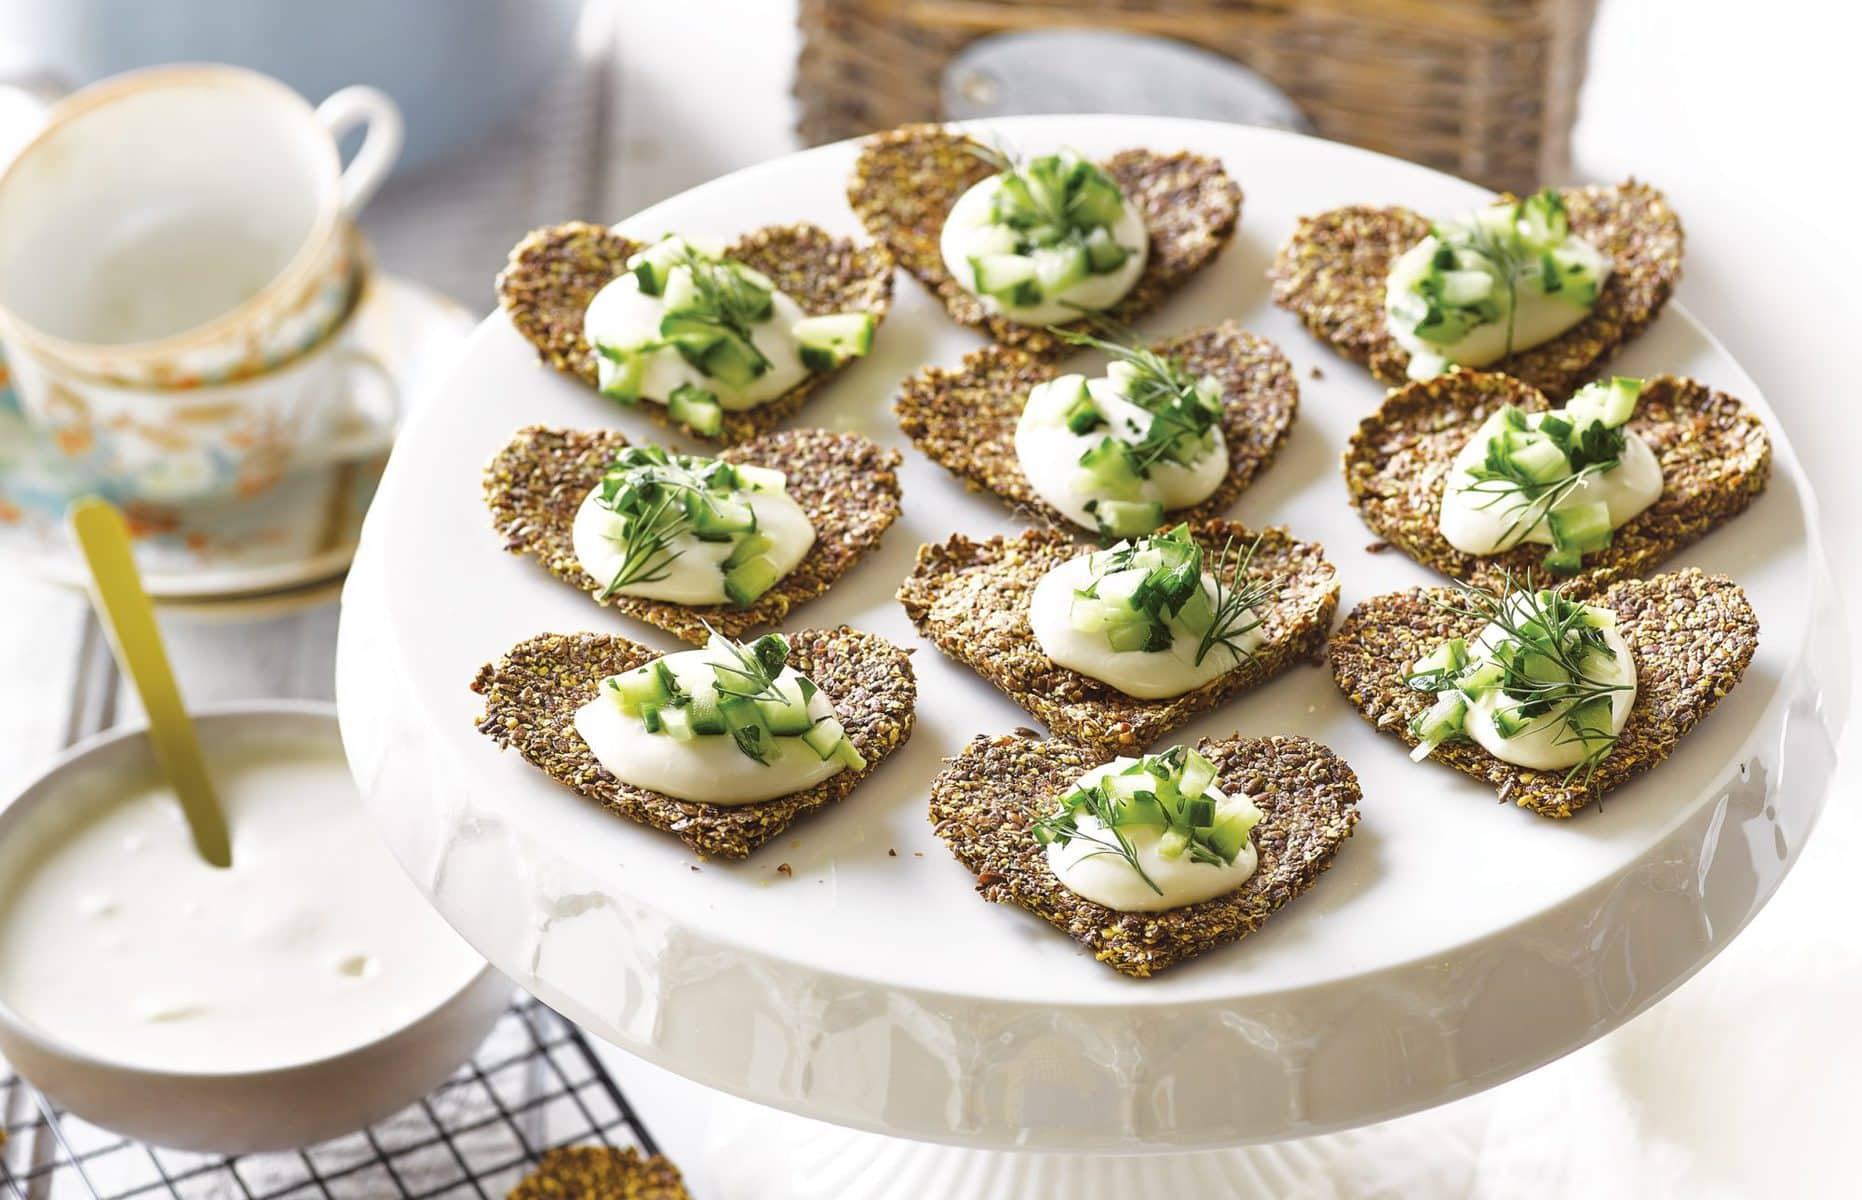 Linseed crackers with whipped feta and herbed cucumber